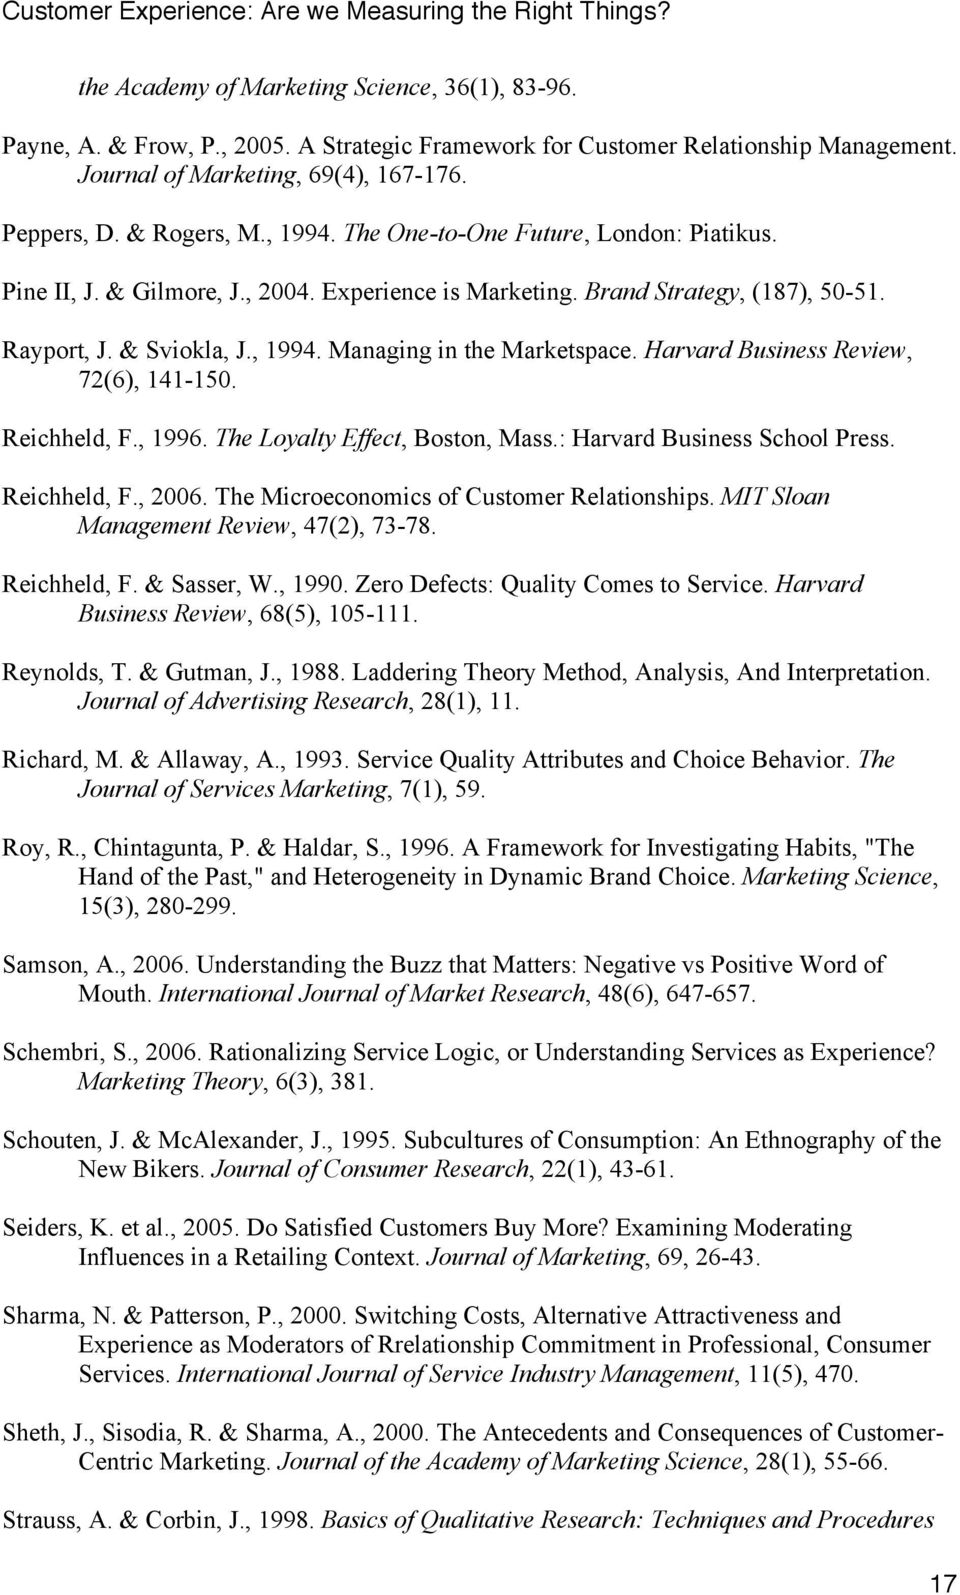 Harvard Business Review, 72(6), 141-150. Reichheld, F., 1996. The Loyalty Effect, Boston, Mass.: Harvard Business School Press. Reichheld, F., 2006. The Microeconomics of Customer Relationships.